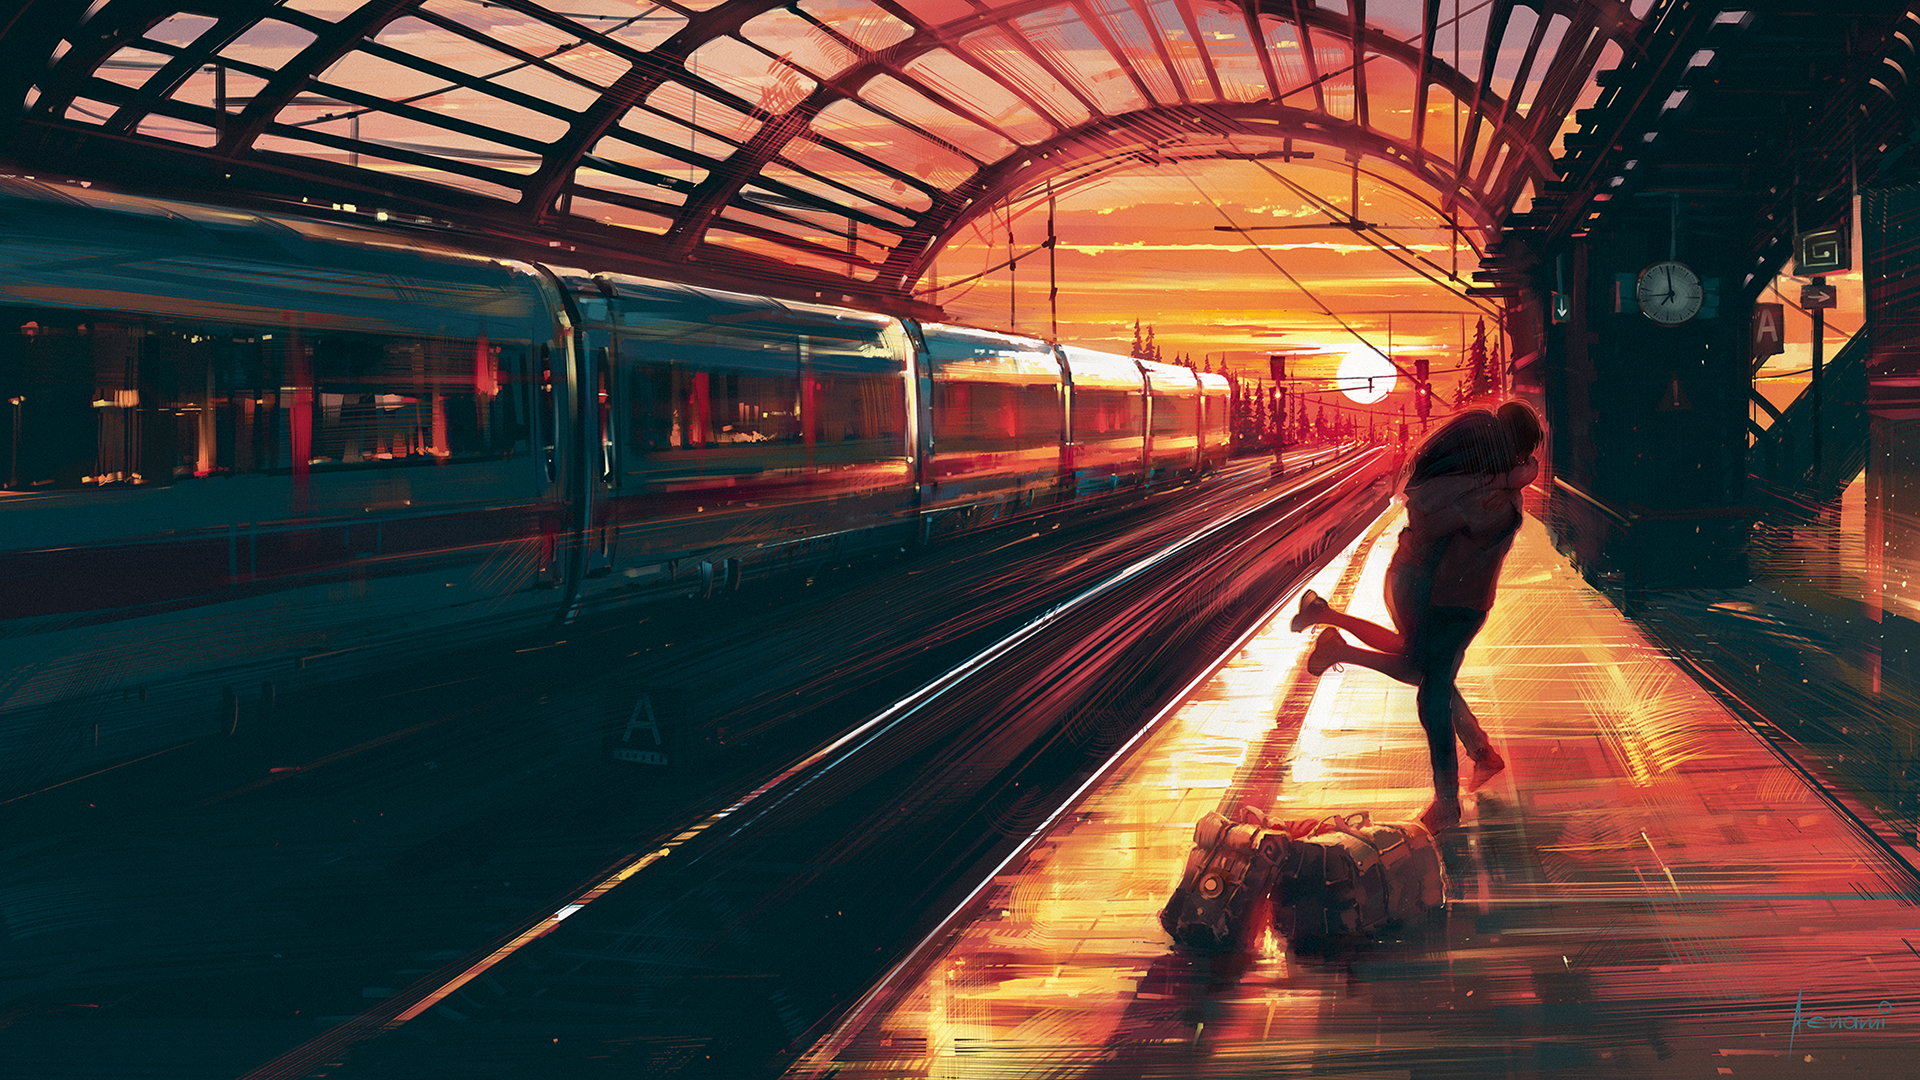 General 1920x1080 2D digital art landscape train station Aenami